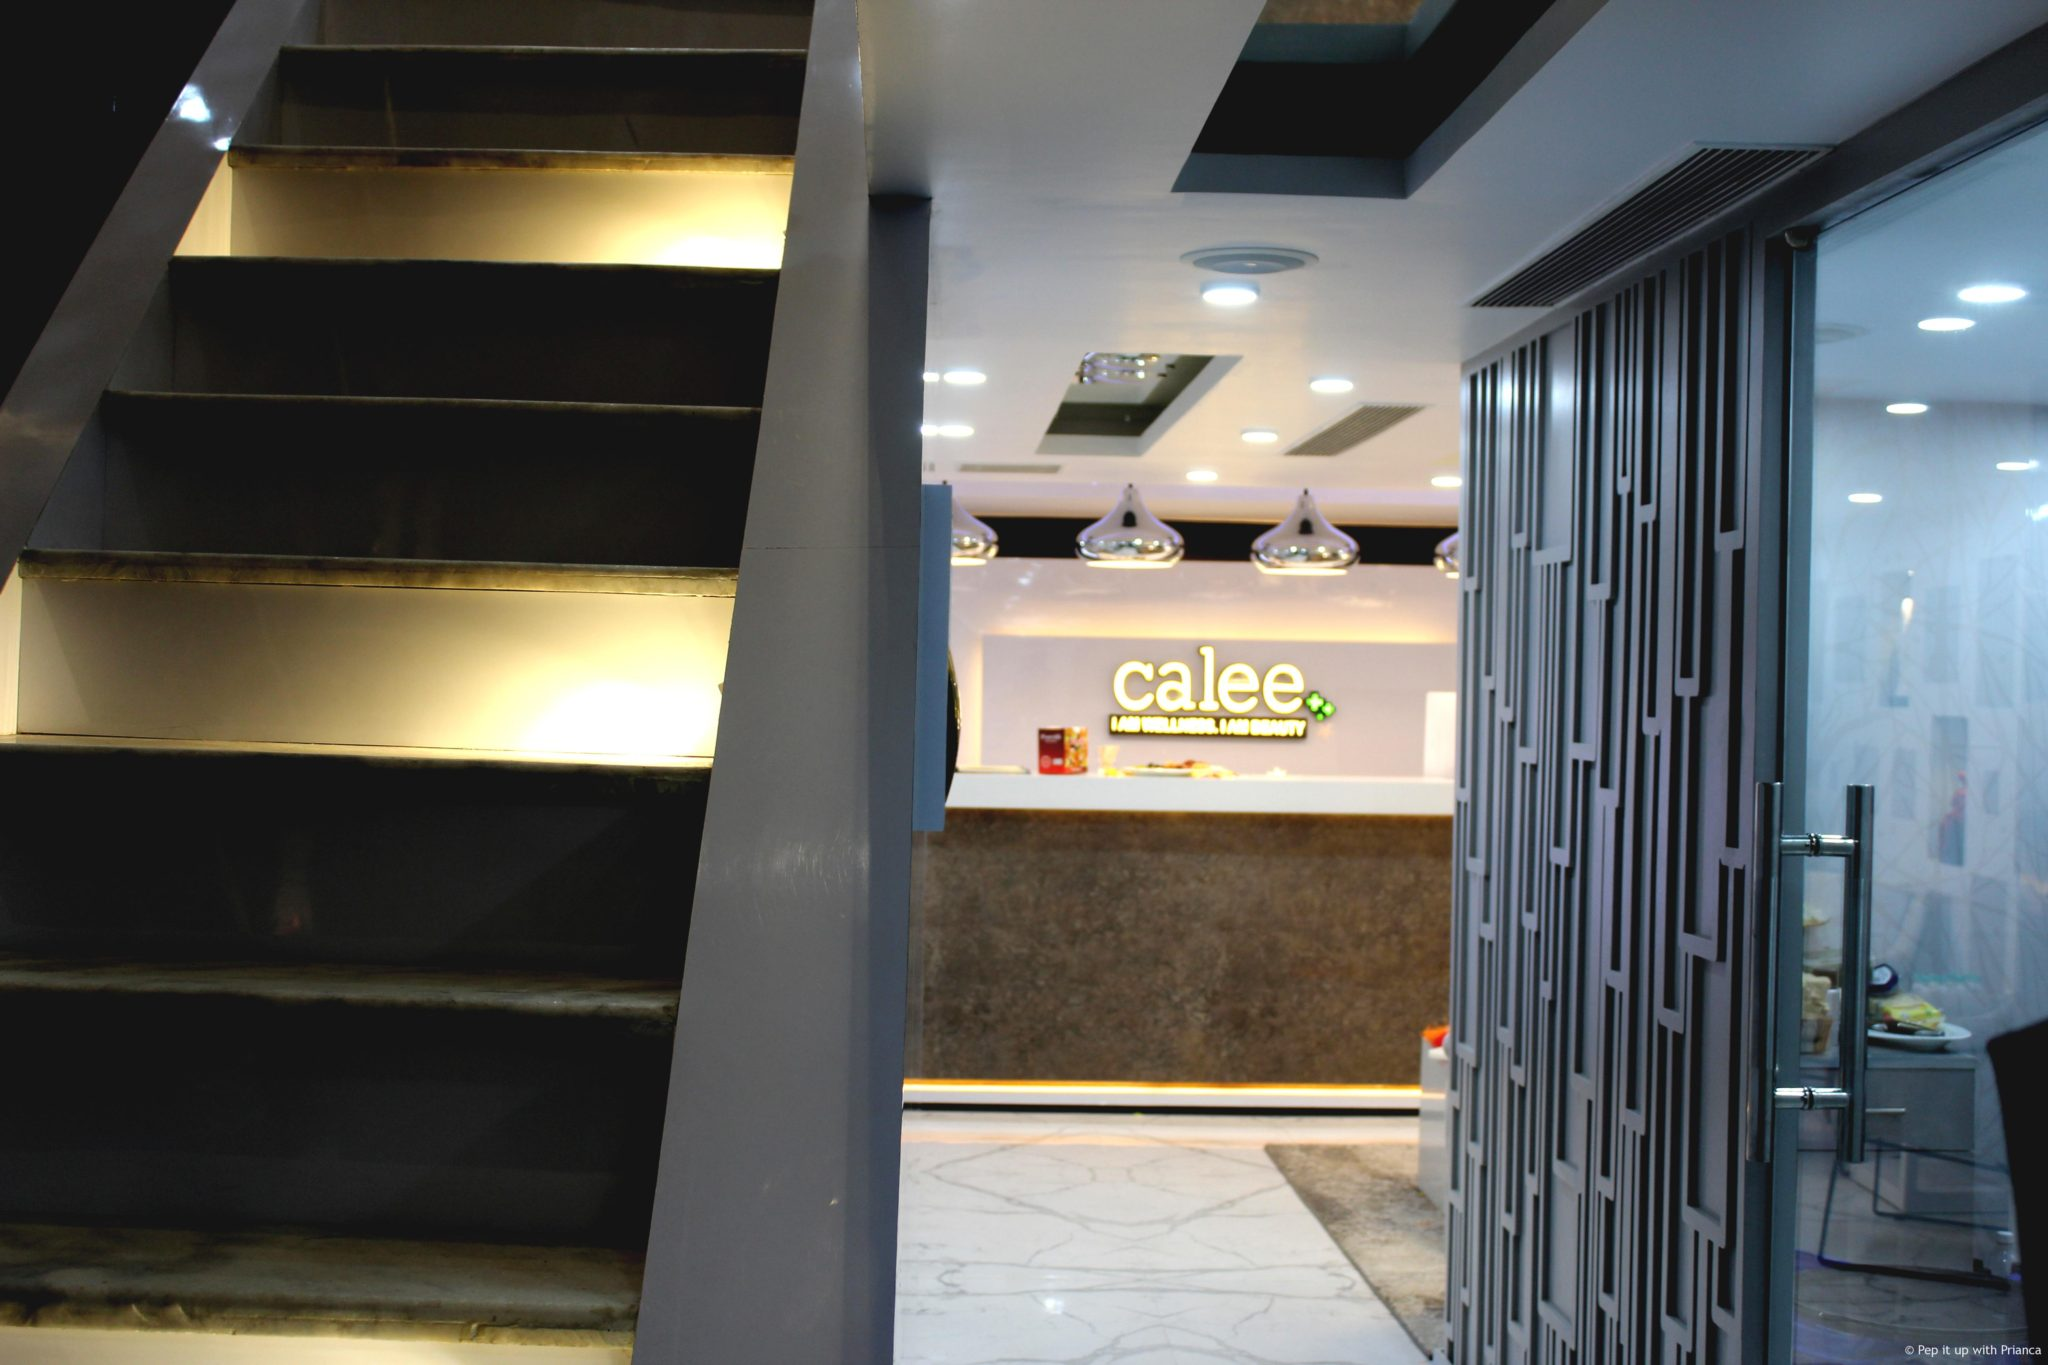 Calee in noida for hair growth